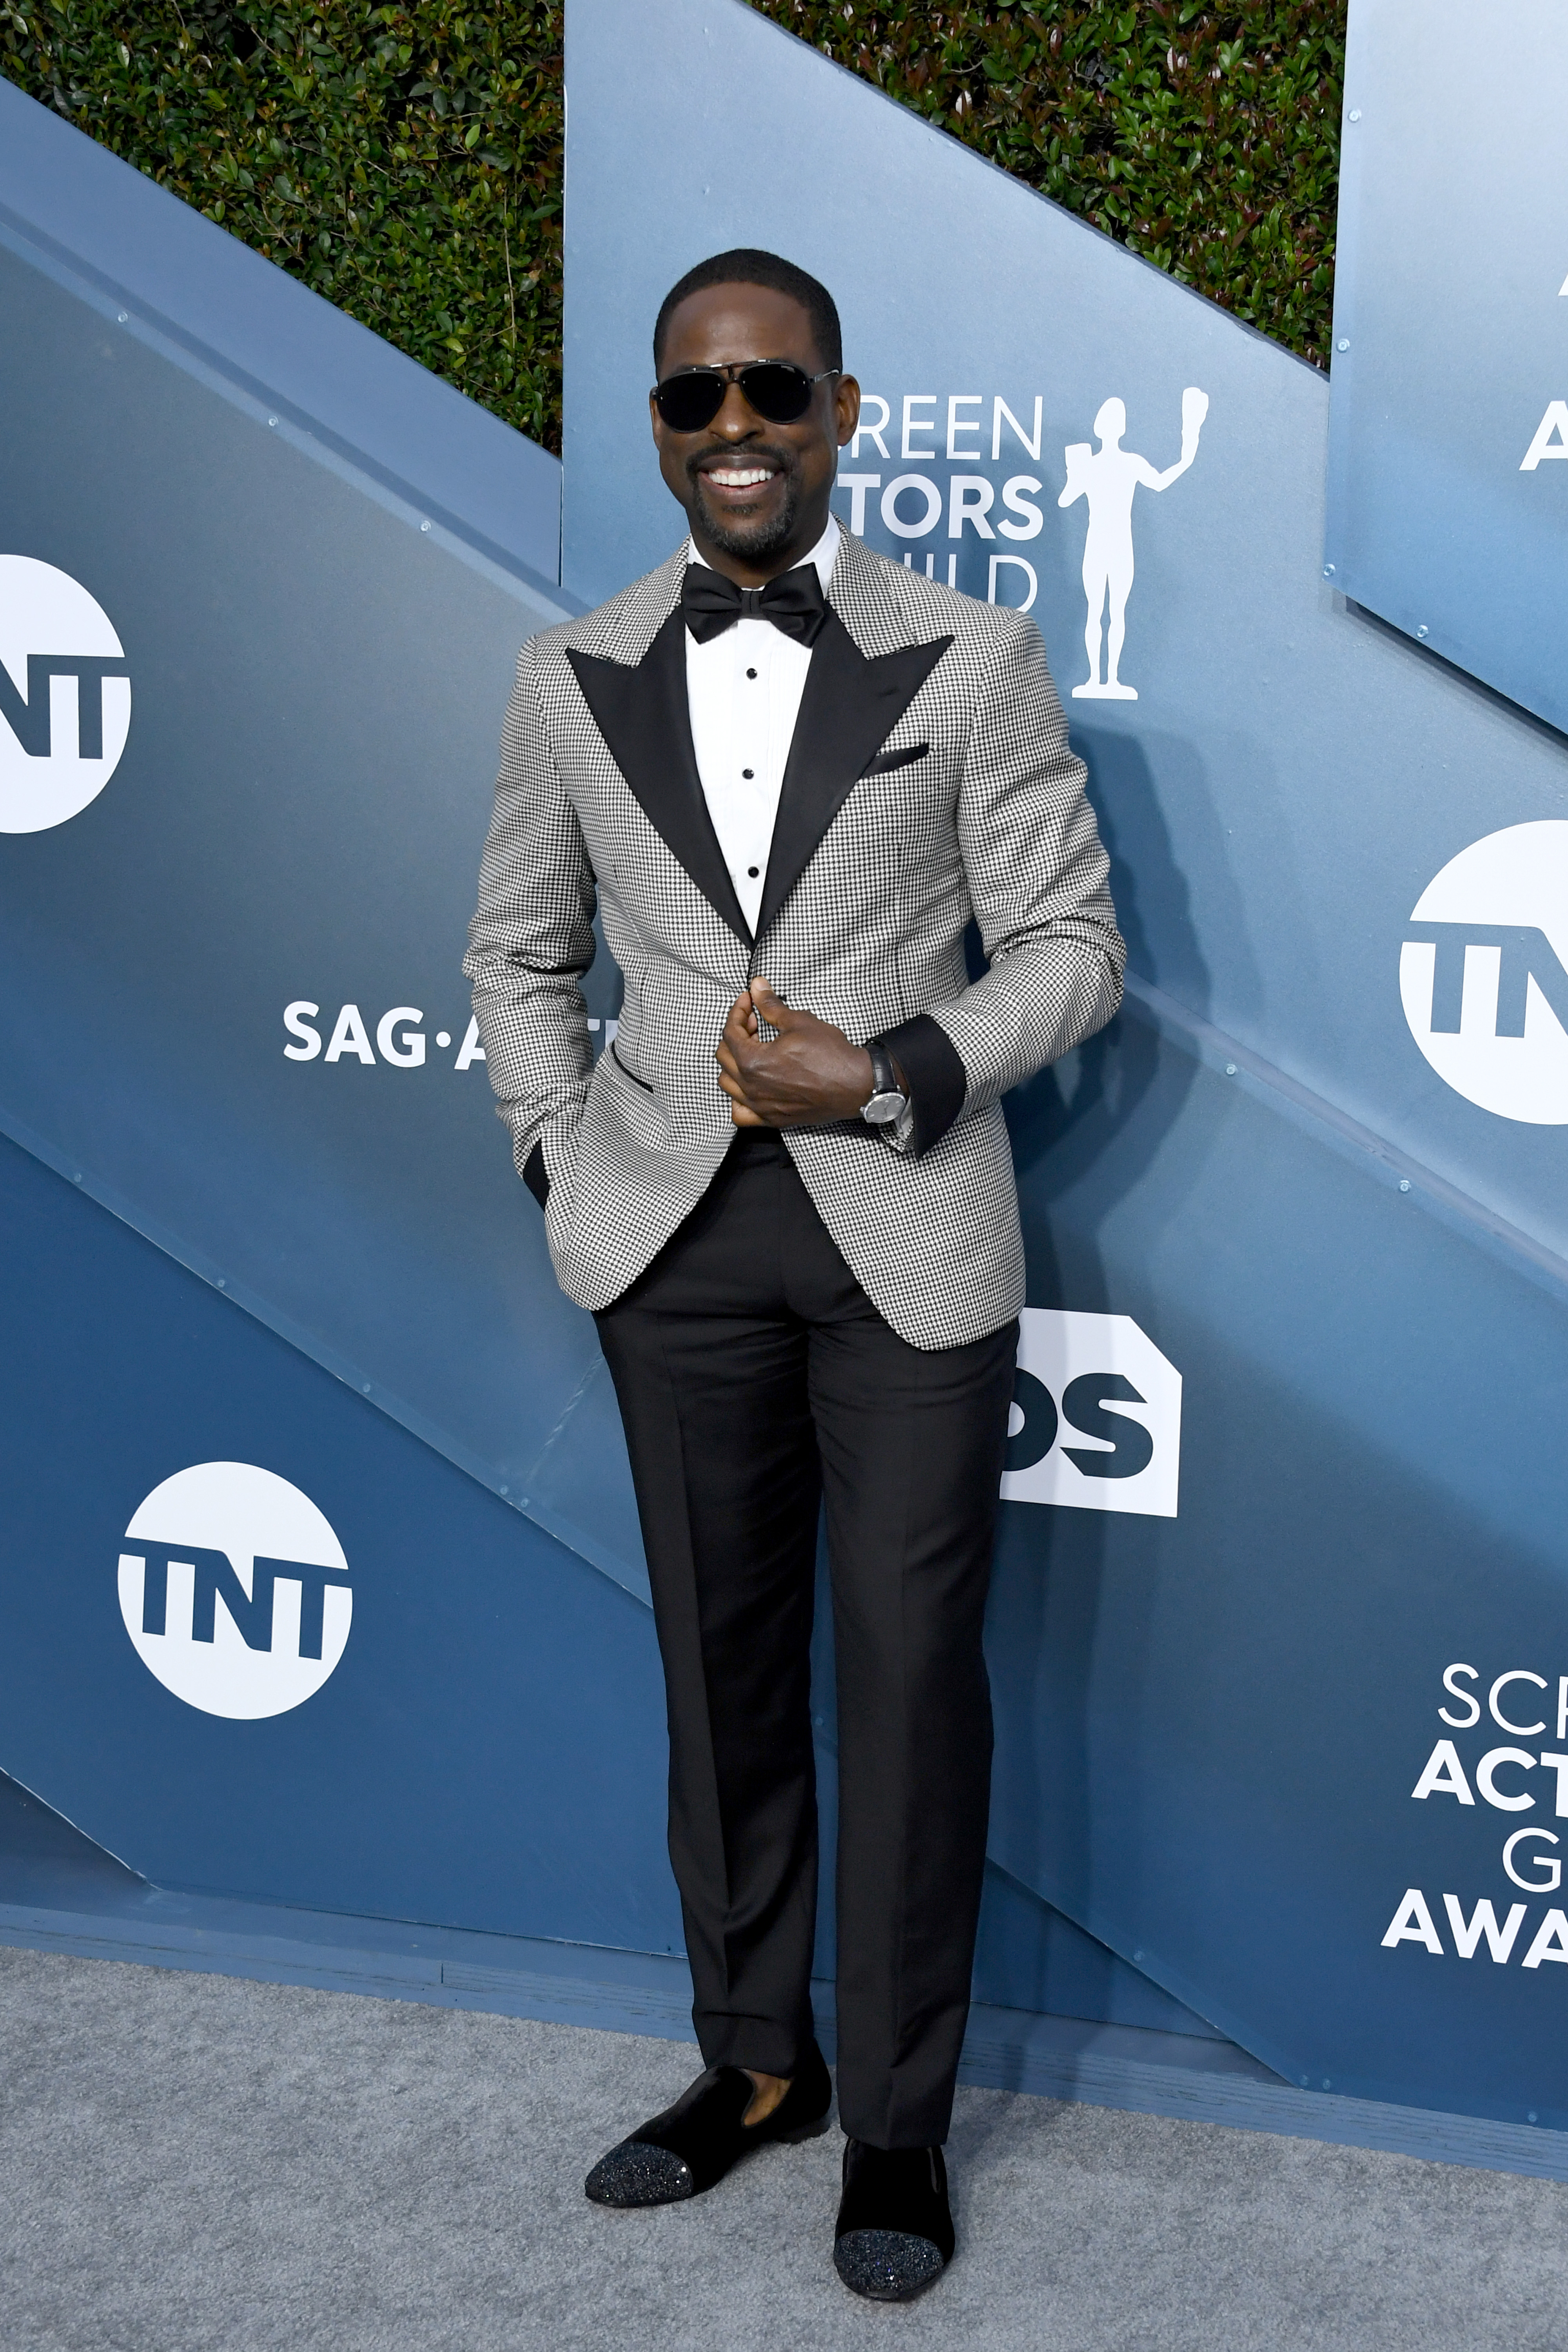 LOS ANGELES, CALIFORNIA - JANUARY 19: Sterling K. Brown attends the 26th Annual Screen ActorsGuild Awards at The Shrine Auditorium on January 19, 2020 in Los Angeles, California. (Photo by Jon Kopaloff/Getty Images)